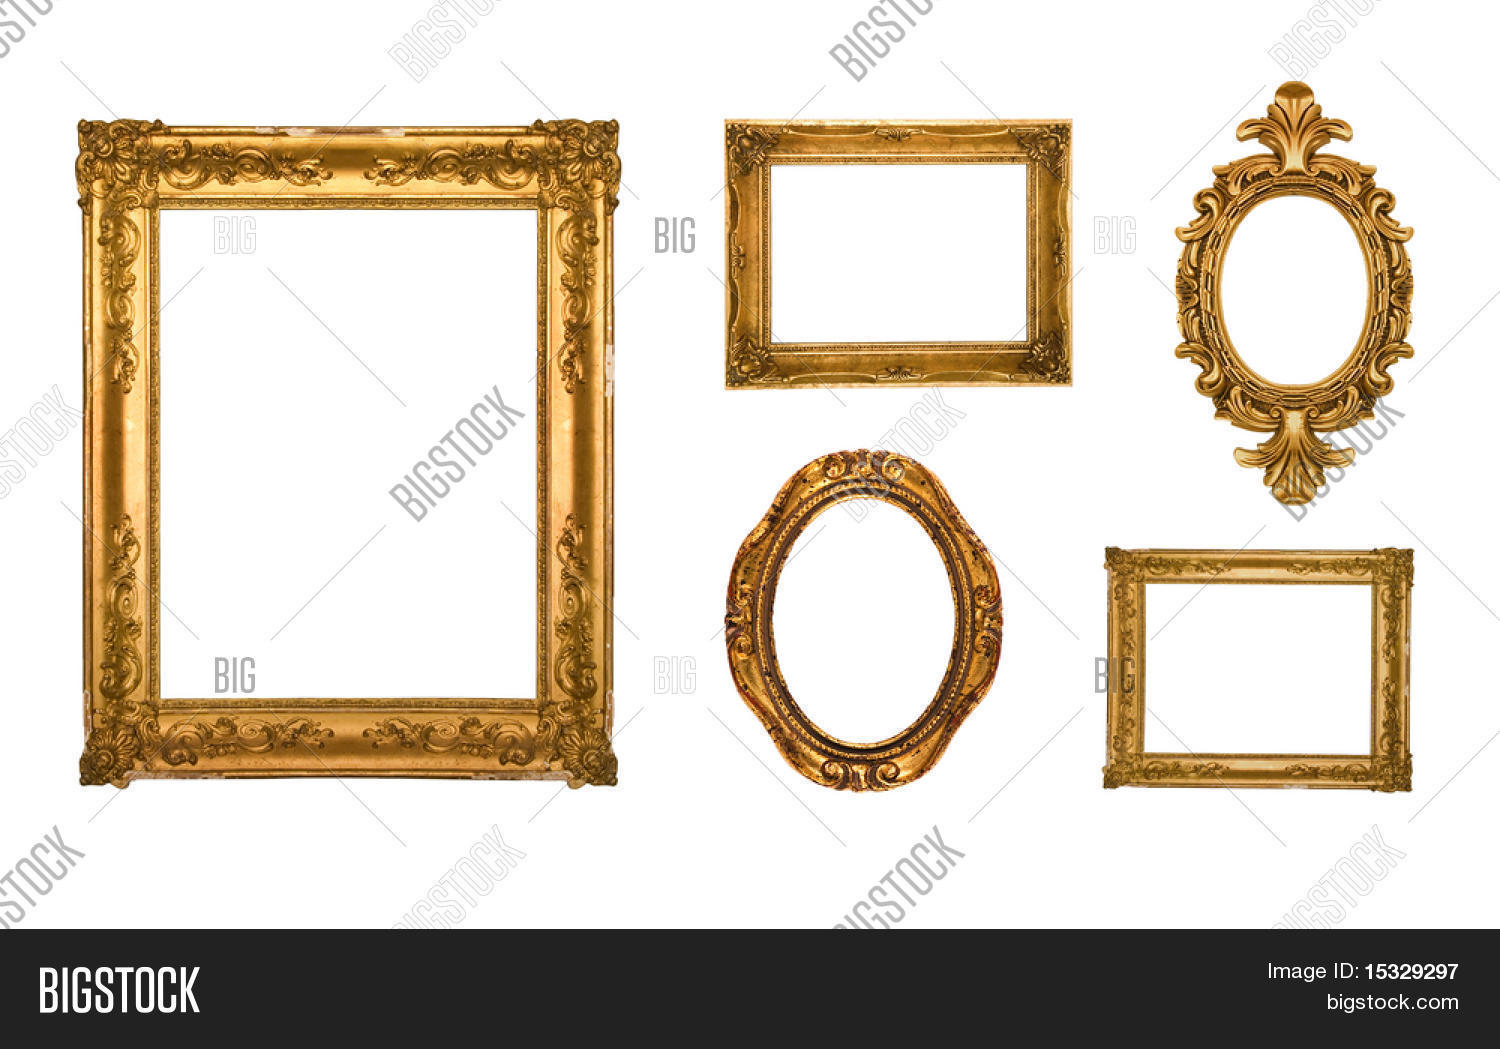 Vintage Gold Ornate Image & Photo (Free Trial) | Bigstock